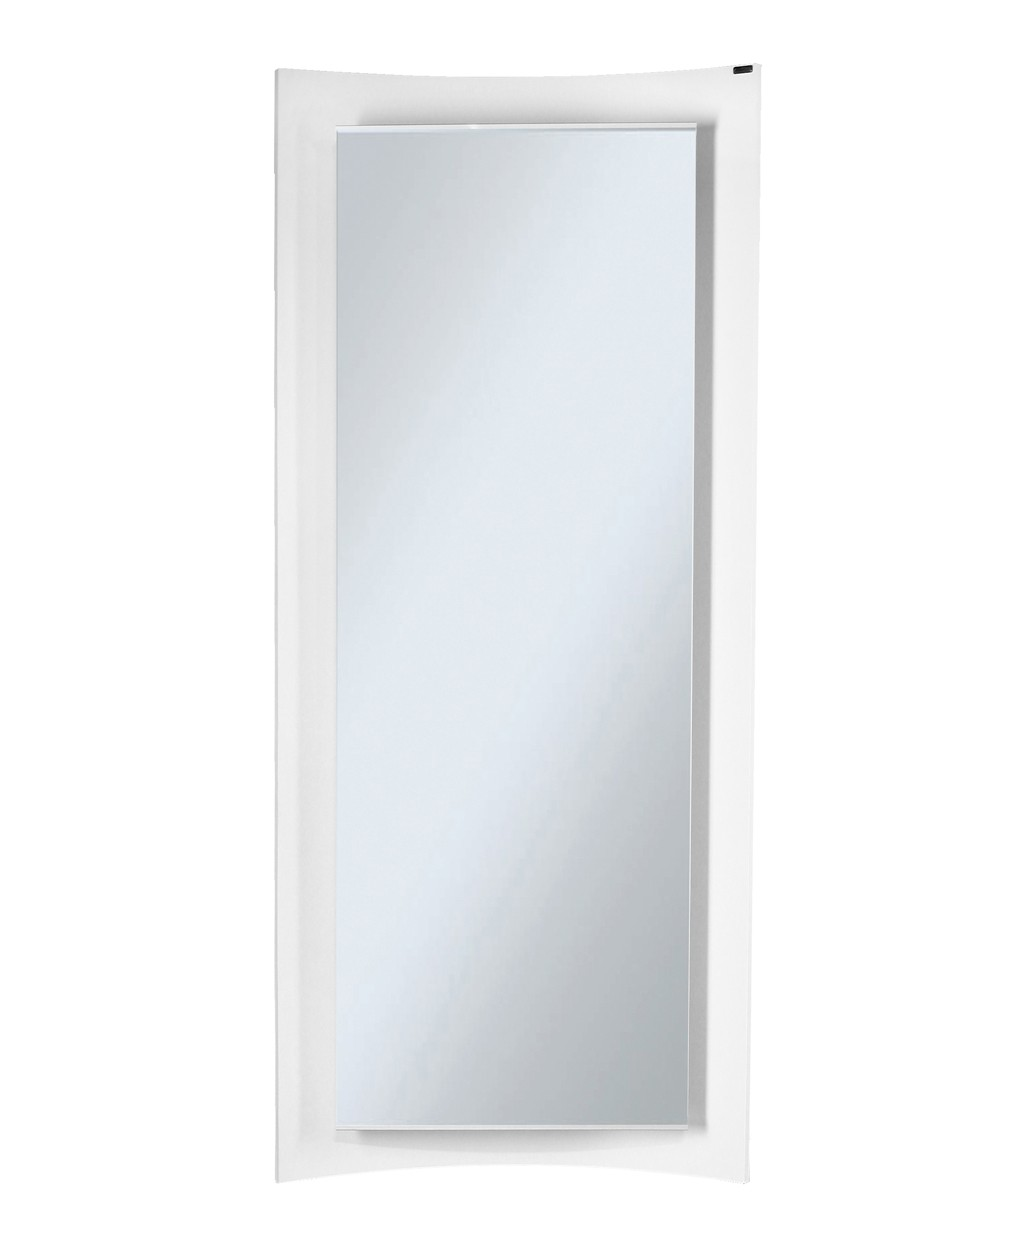 Collins 6611 Kurve Wall Mounted Full Length Mirror